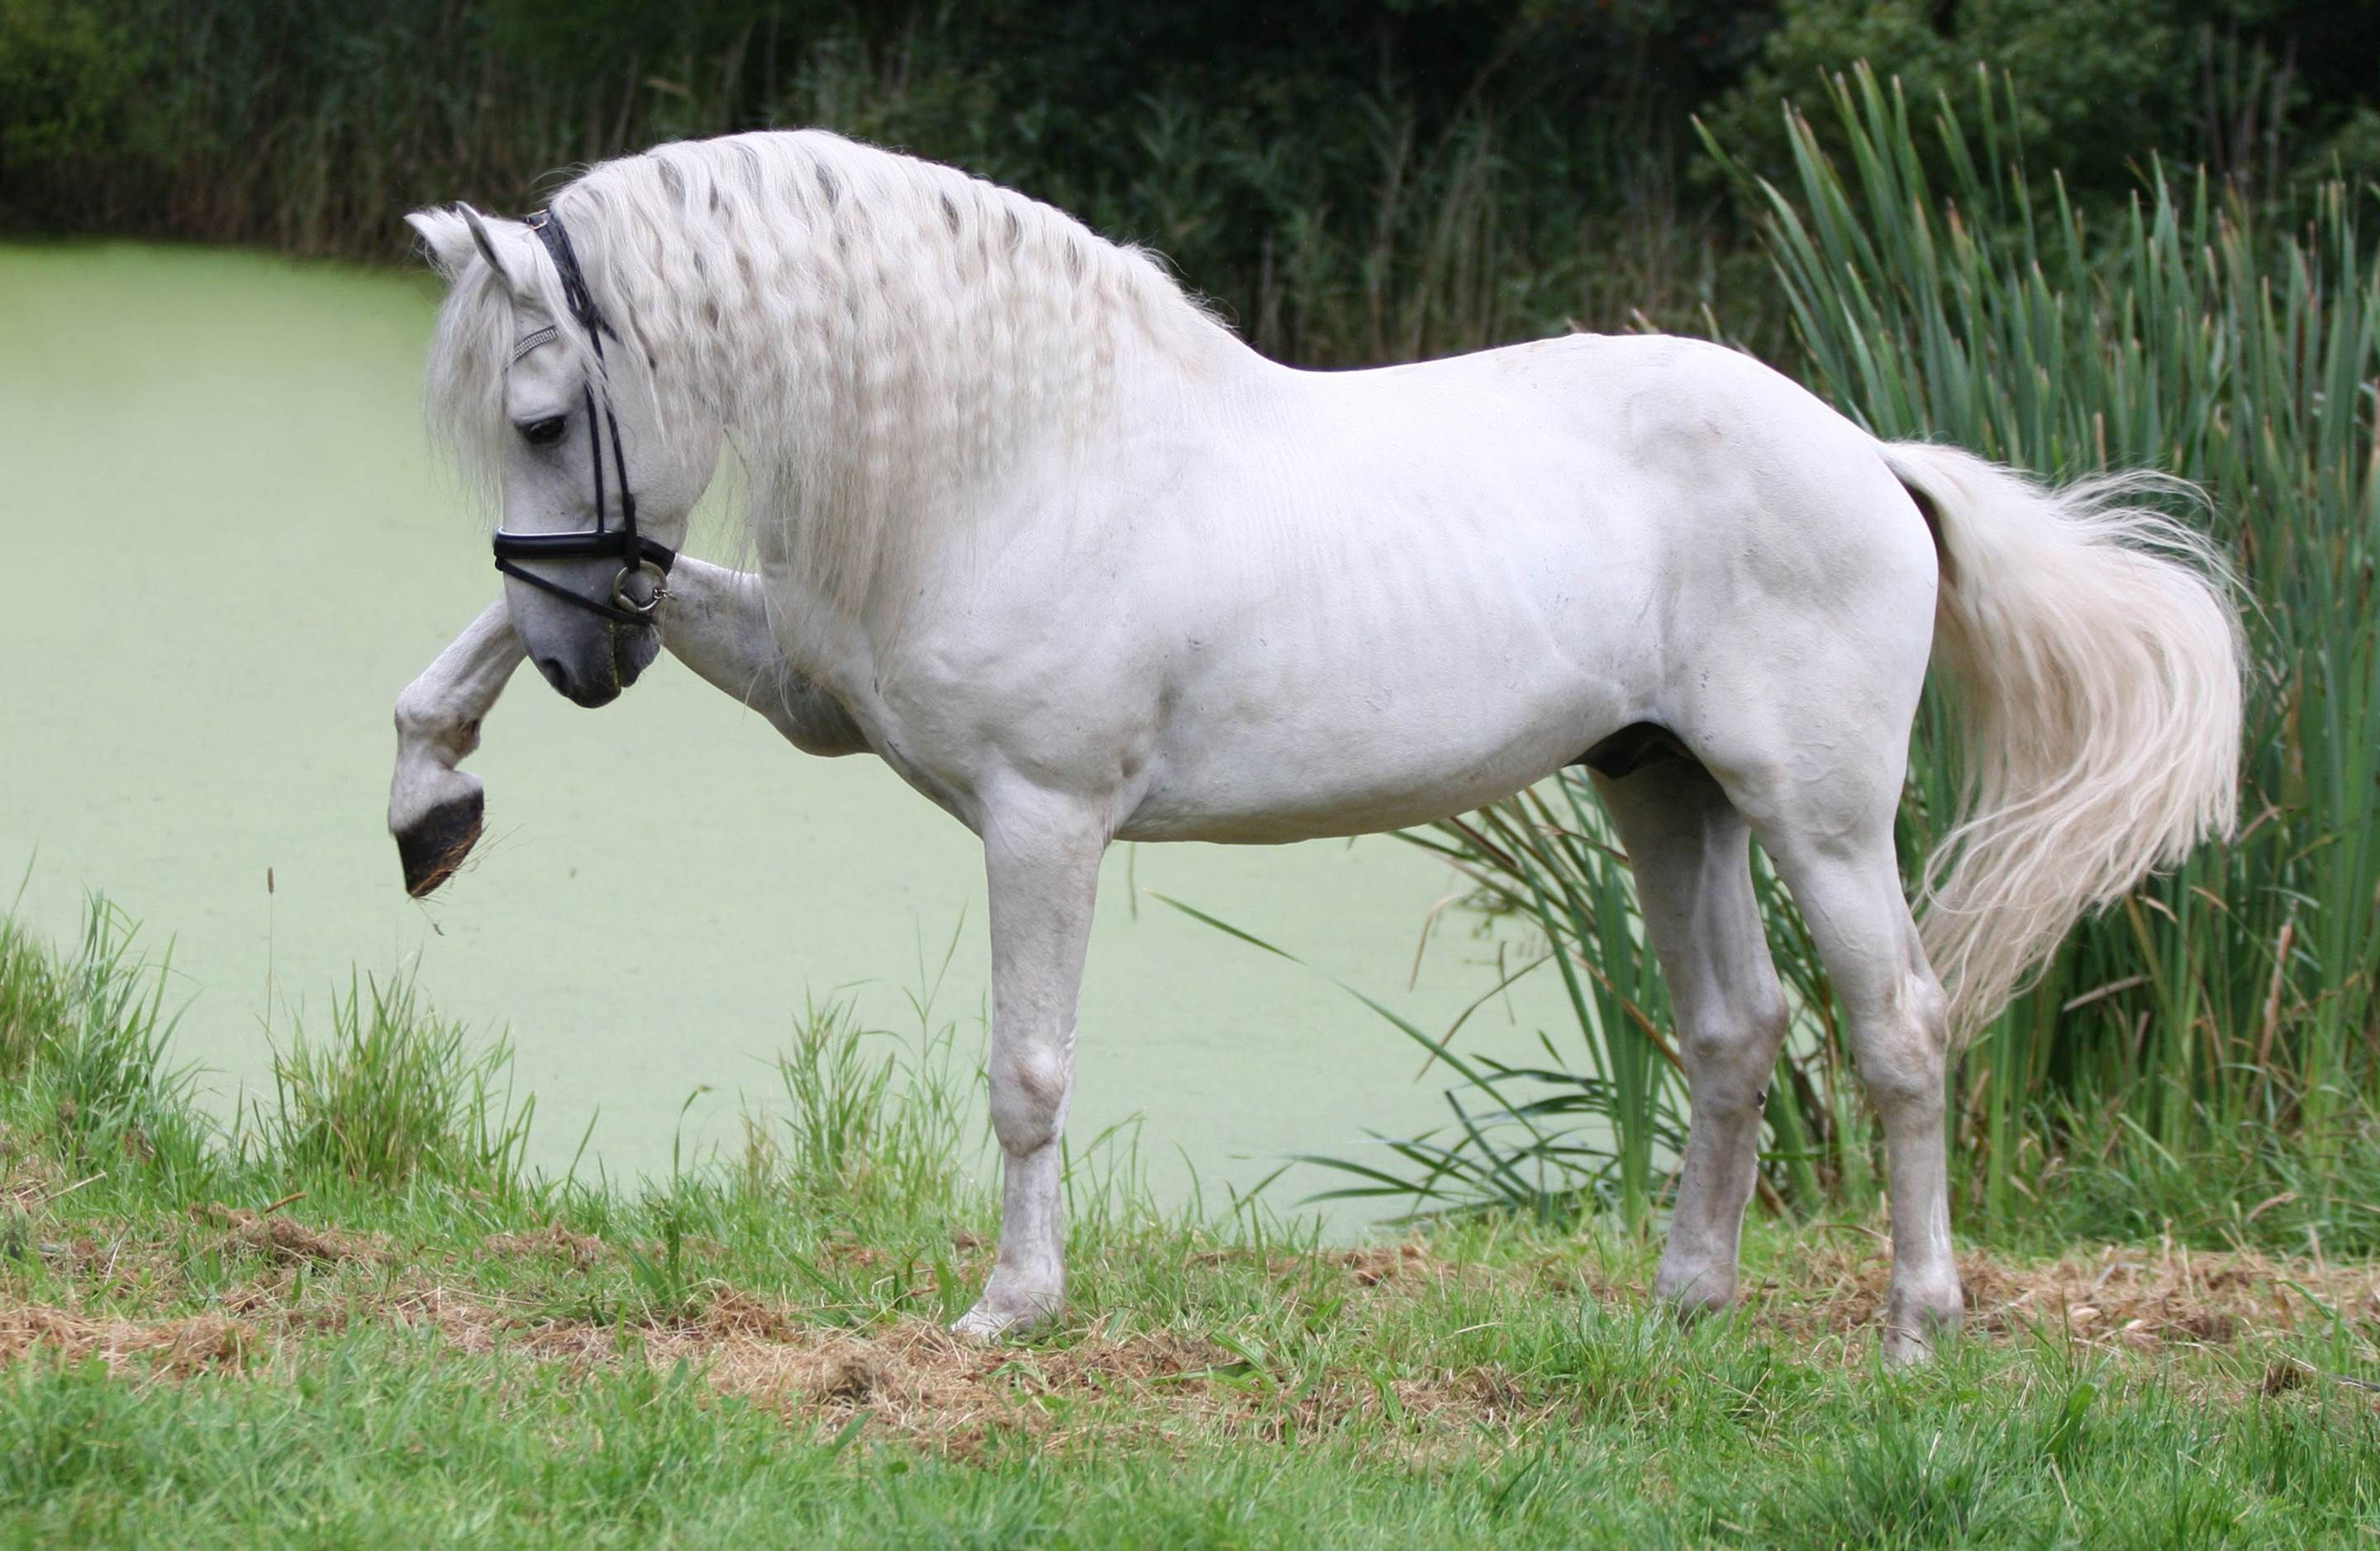 Magnificent white andalusian horse wallpaper hd wallpapers for Wallpaper mare hd